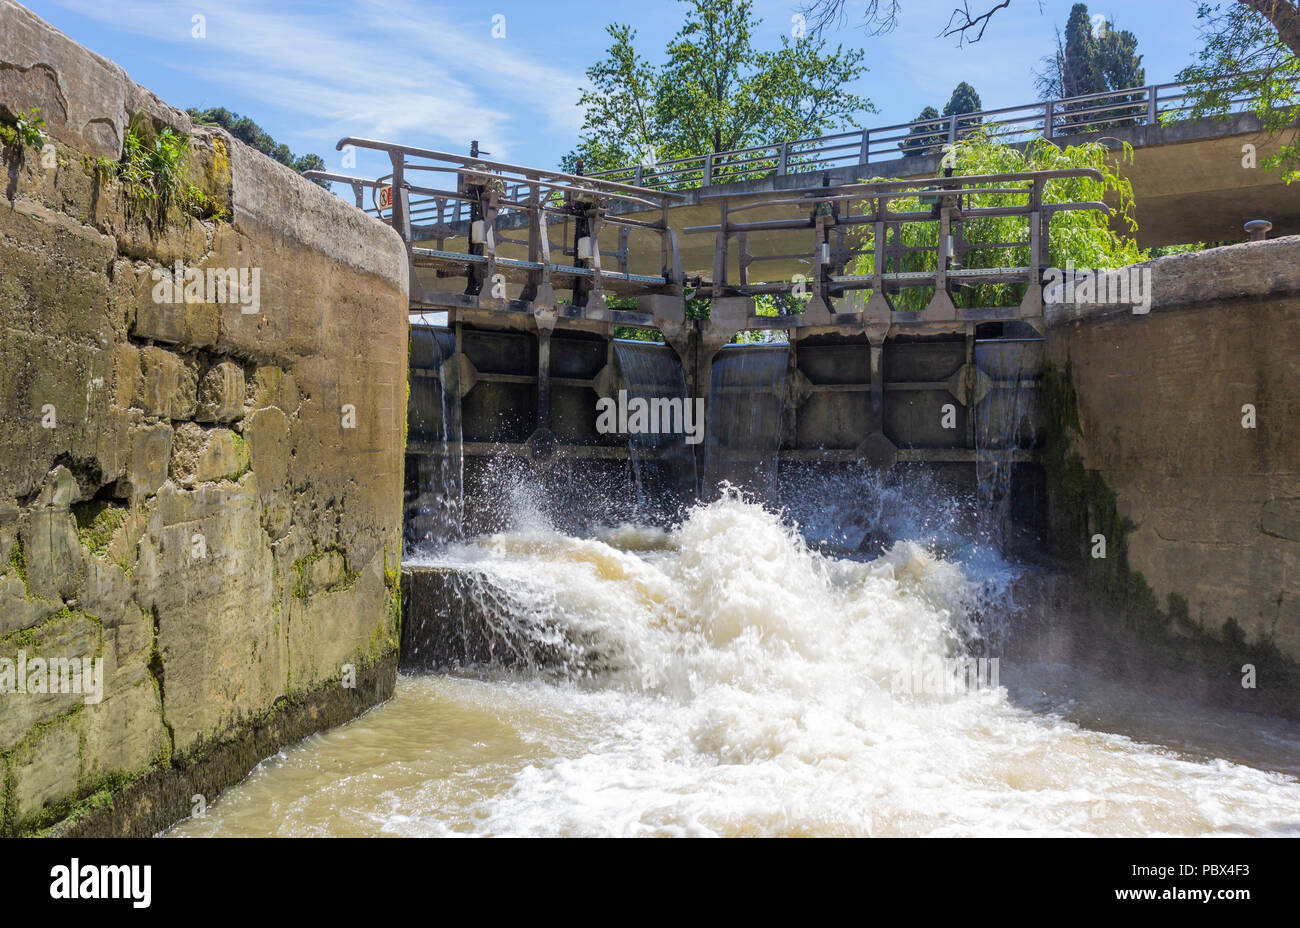 Canal du Midi, Carcassonne, French department of Aude, Occitanie Region, France. Lock gates opening on the canal. A lock is a device used for raising  - Stock Image